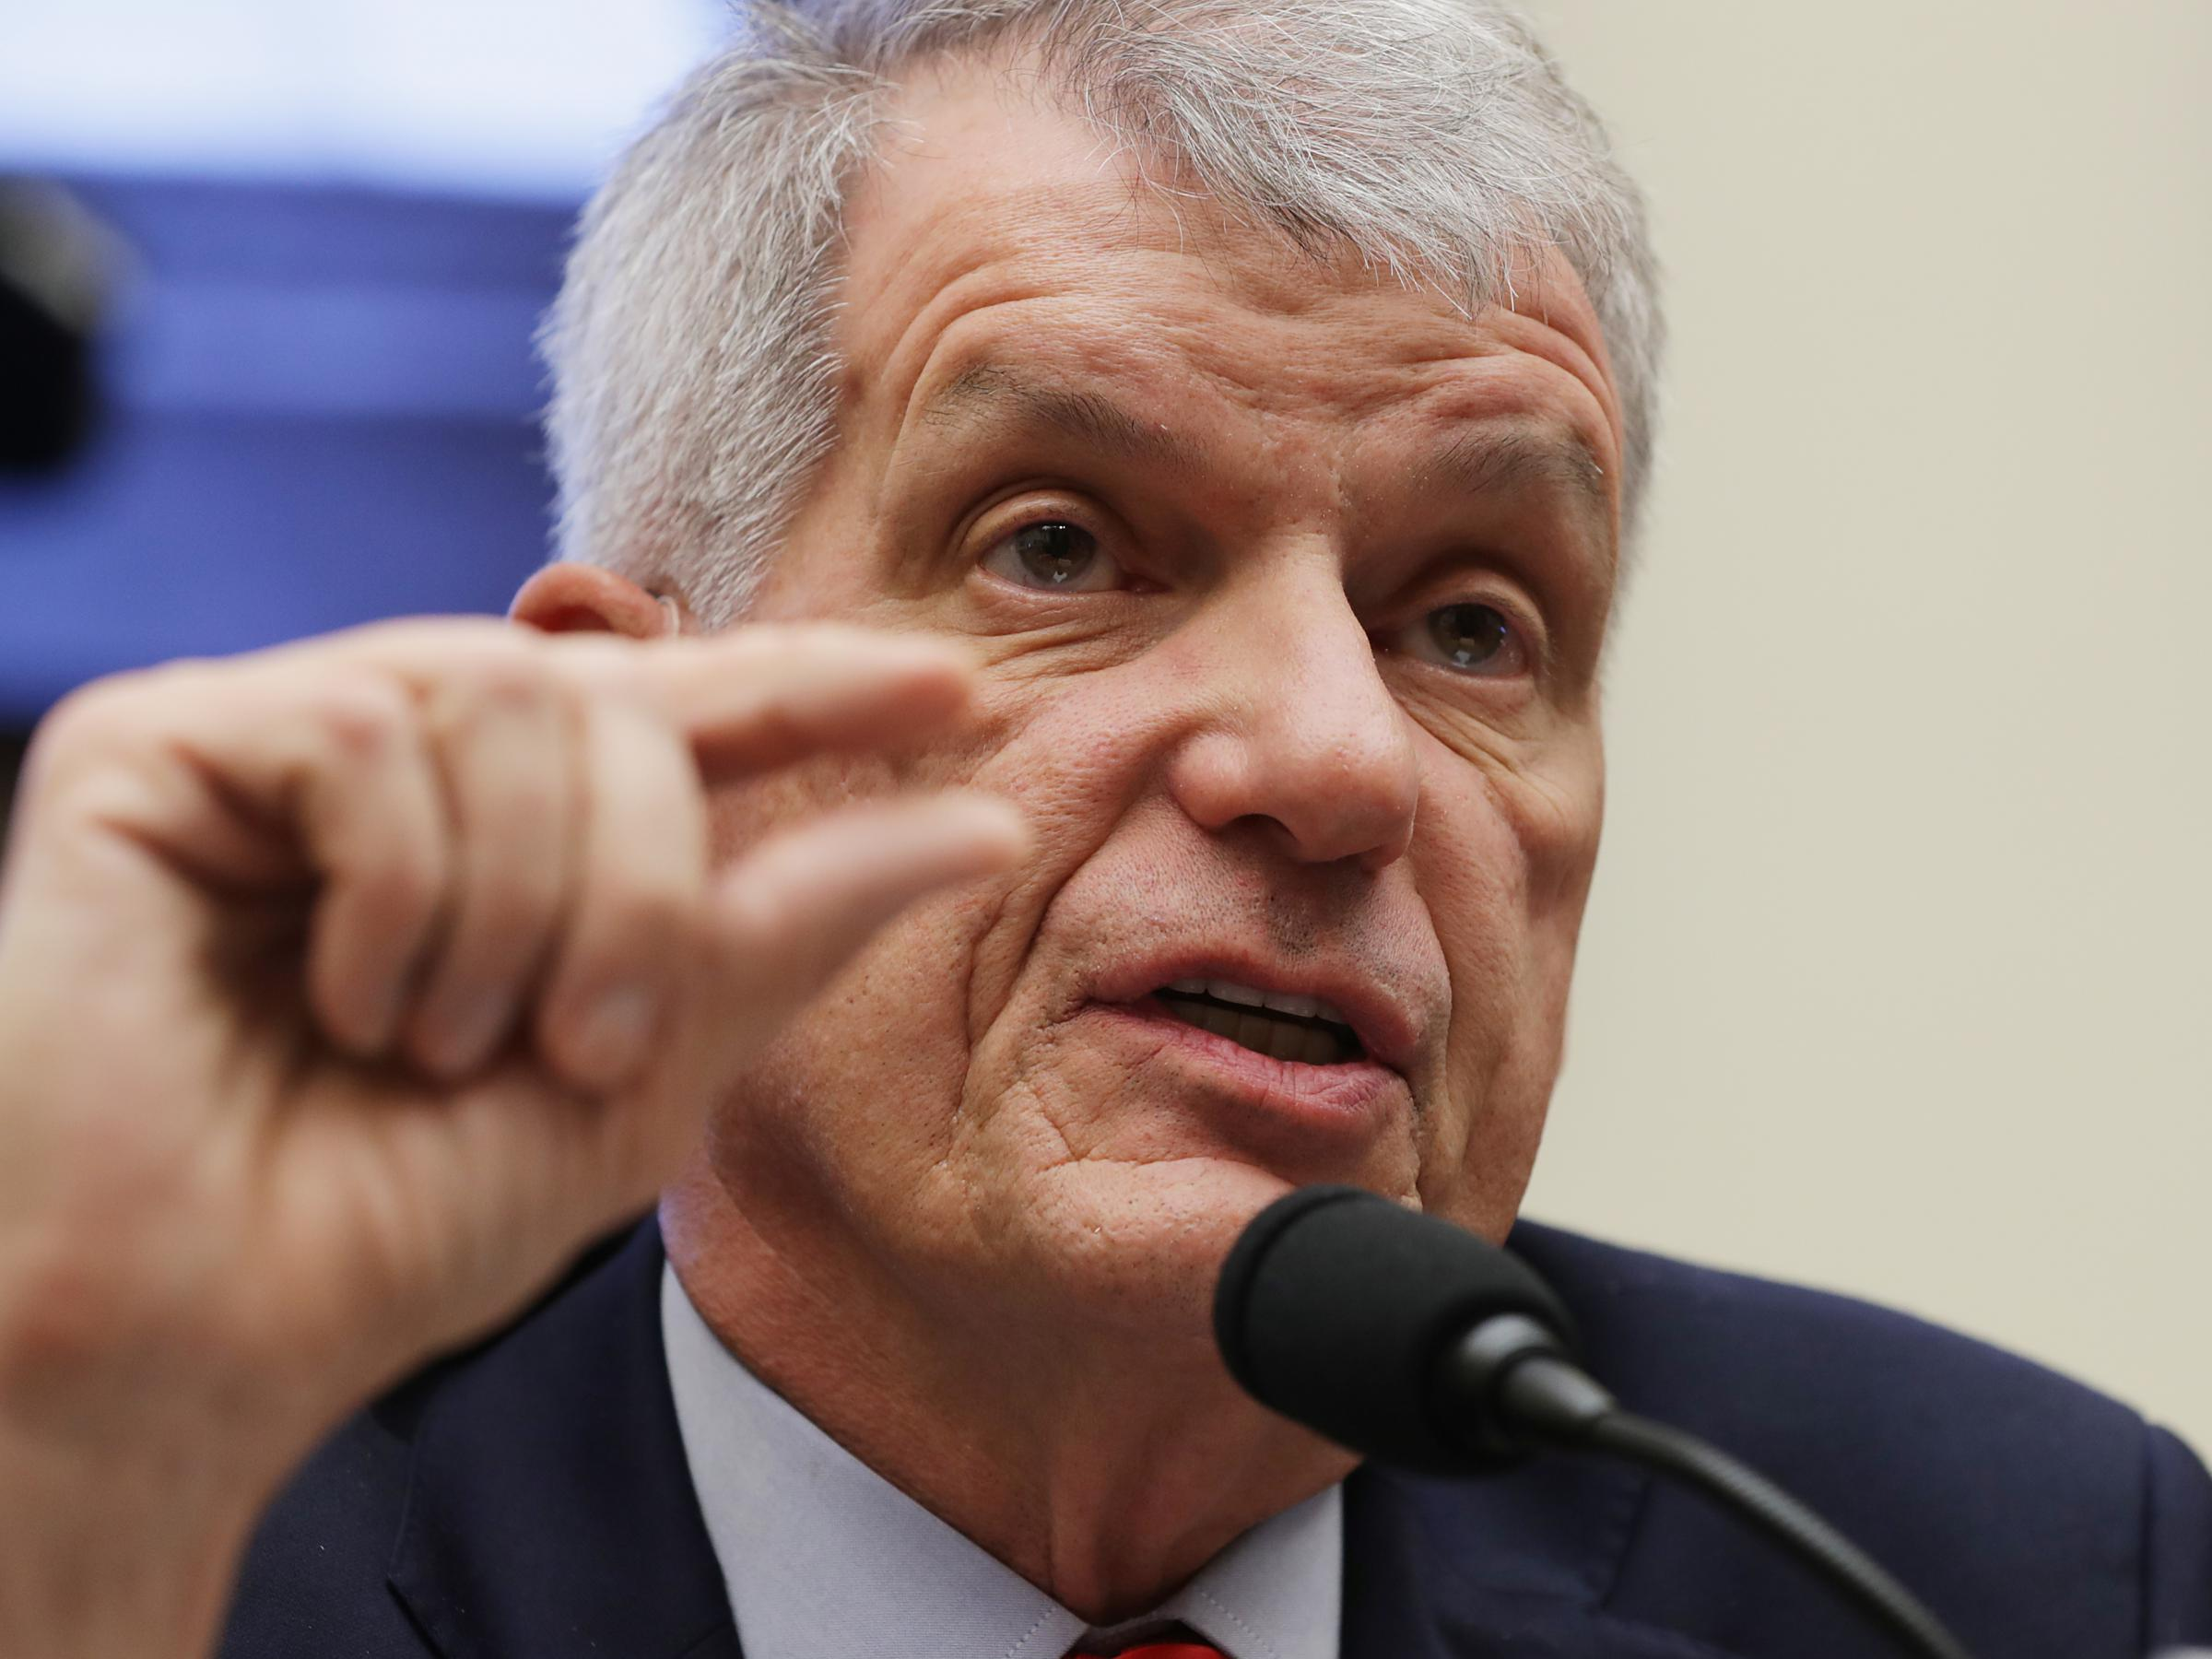 Wells Fargo CEO's overtures earn bipartisan rebuke in fiery congressional hearing